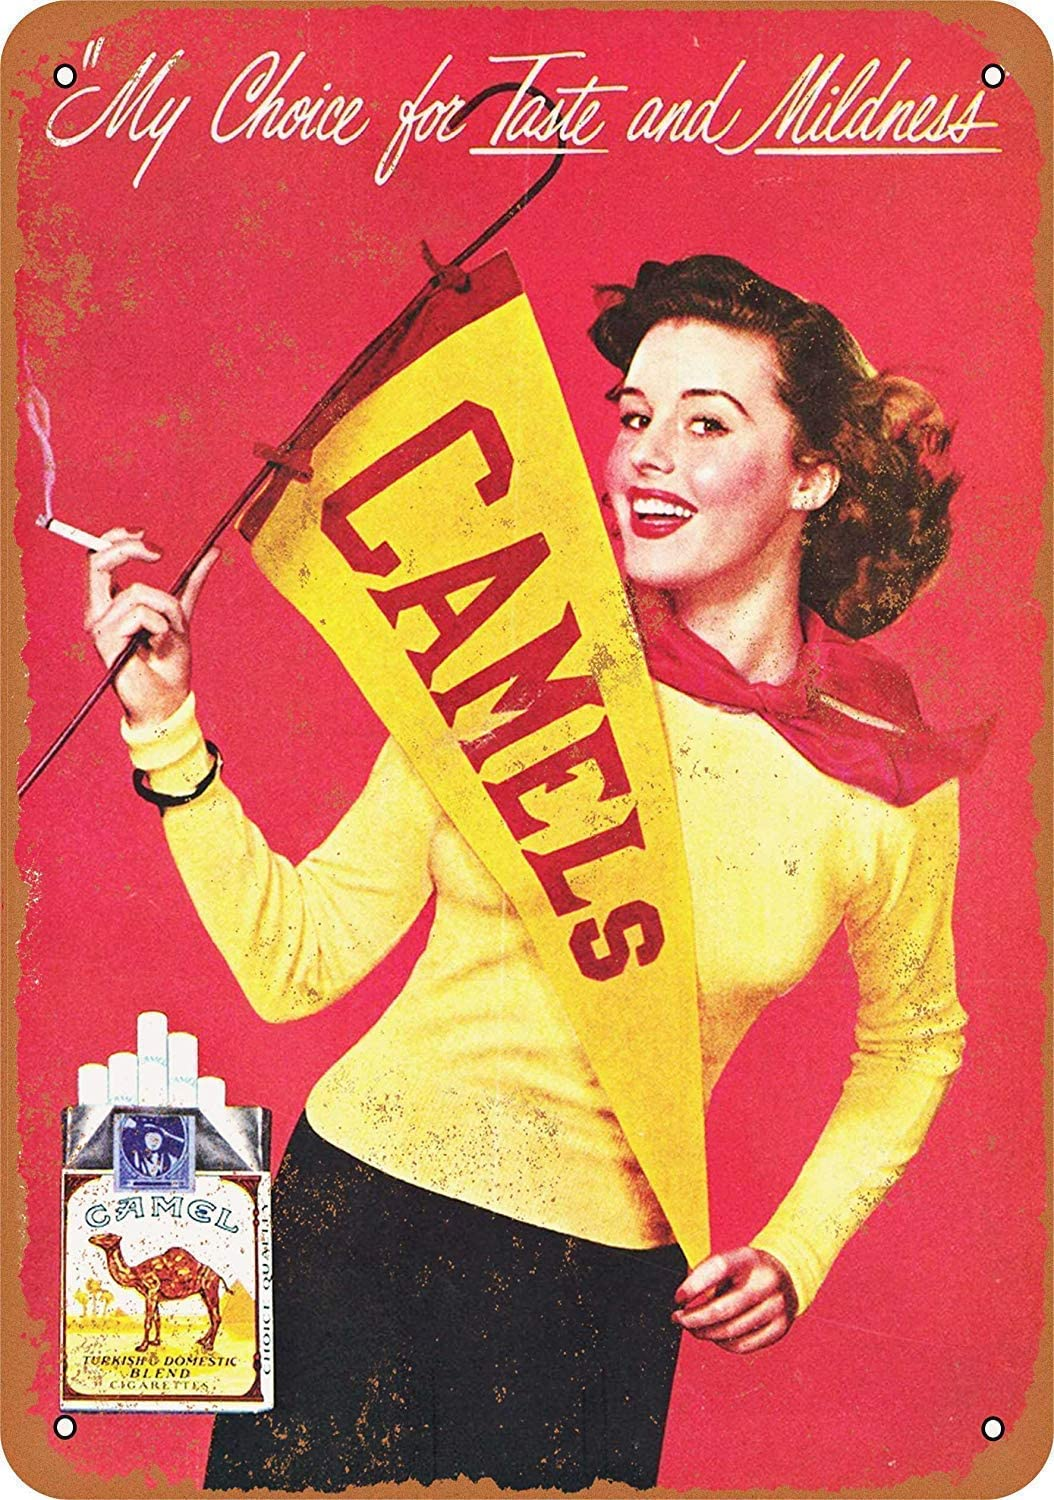 Funny Retro Wall Décor Tin Sign for Home Cheerleaders for Camel Cigarettes Rustic Vintage Look Reproduction Aluminum Metal Sign 8x12 INCH (YHA038)